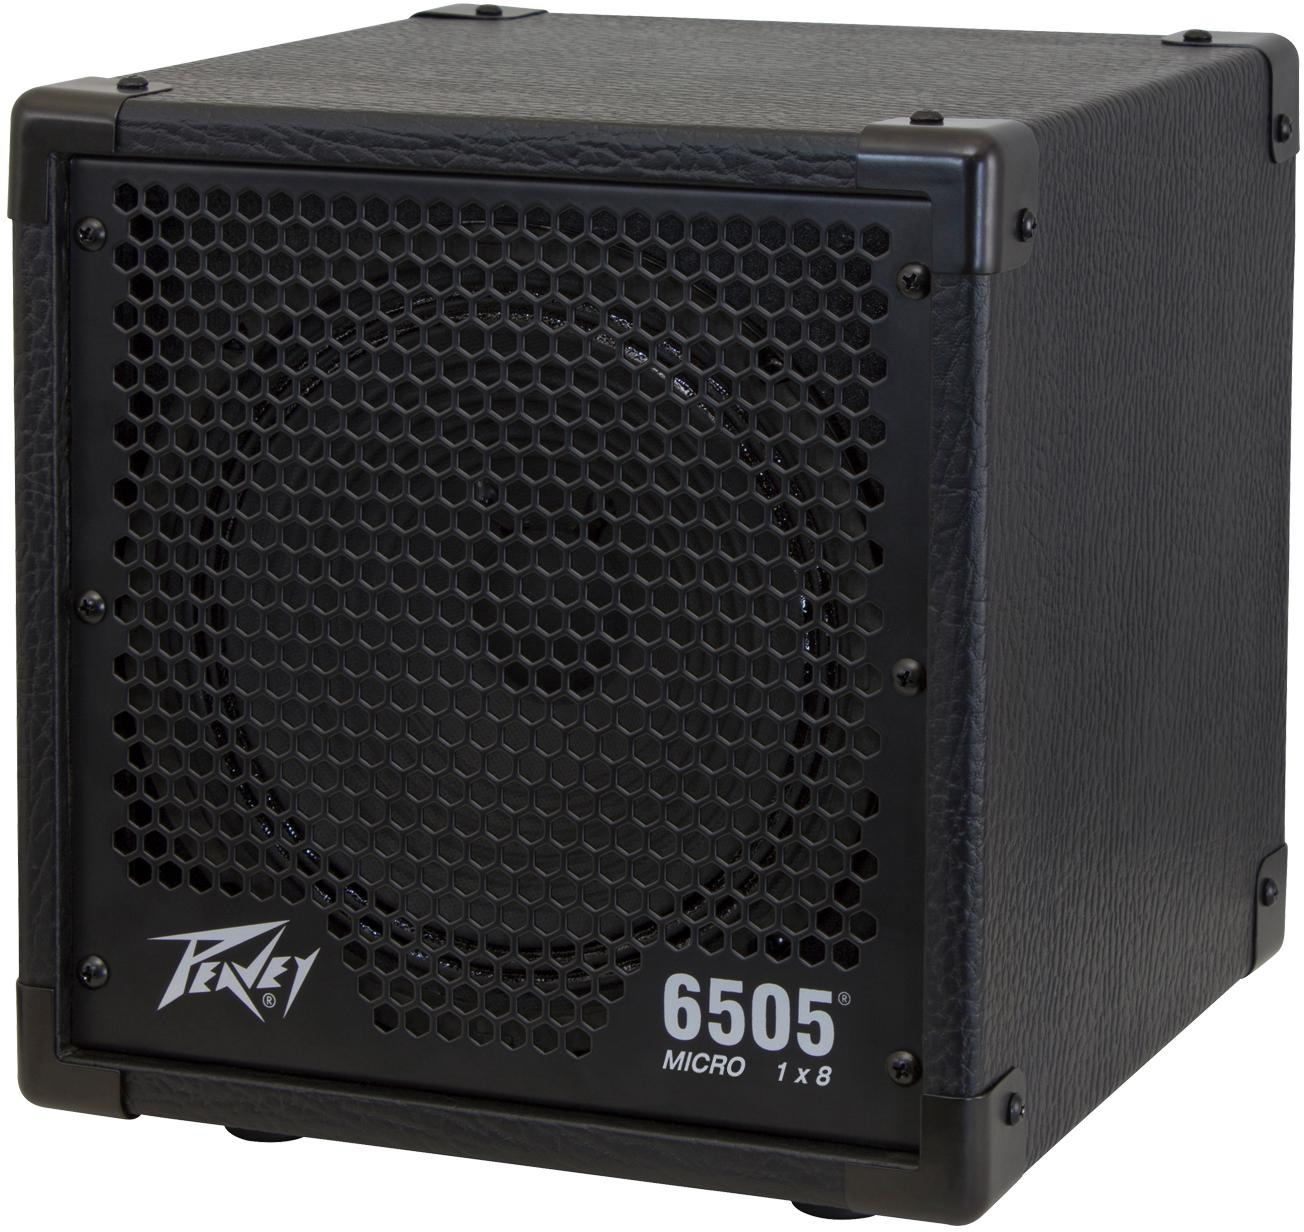 peavey 6505 micro 1x8 electric guitar piranha 8 speaker cab cabinet 50w pev17 3616320 rs. Black Bedroom Furniture Sets. Home Design Ideas